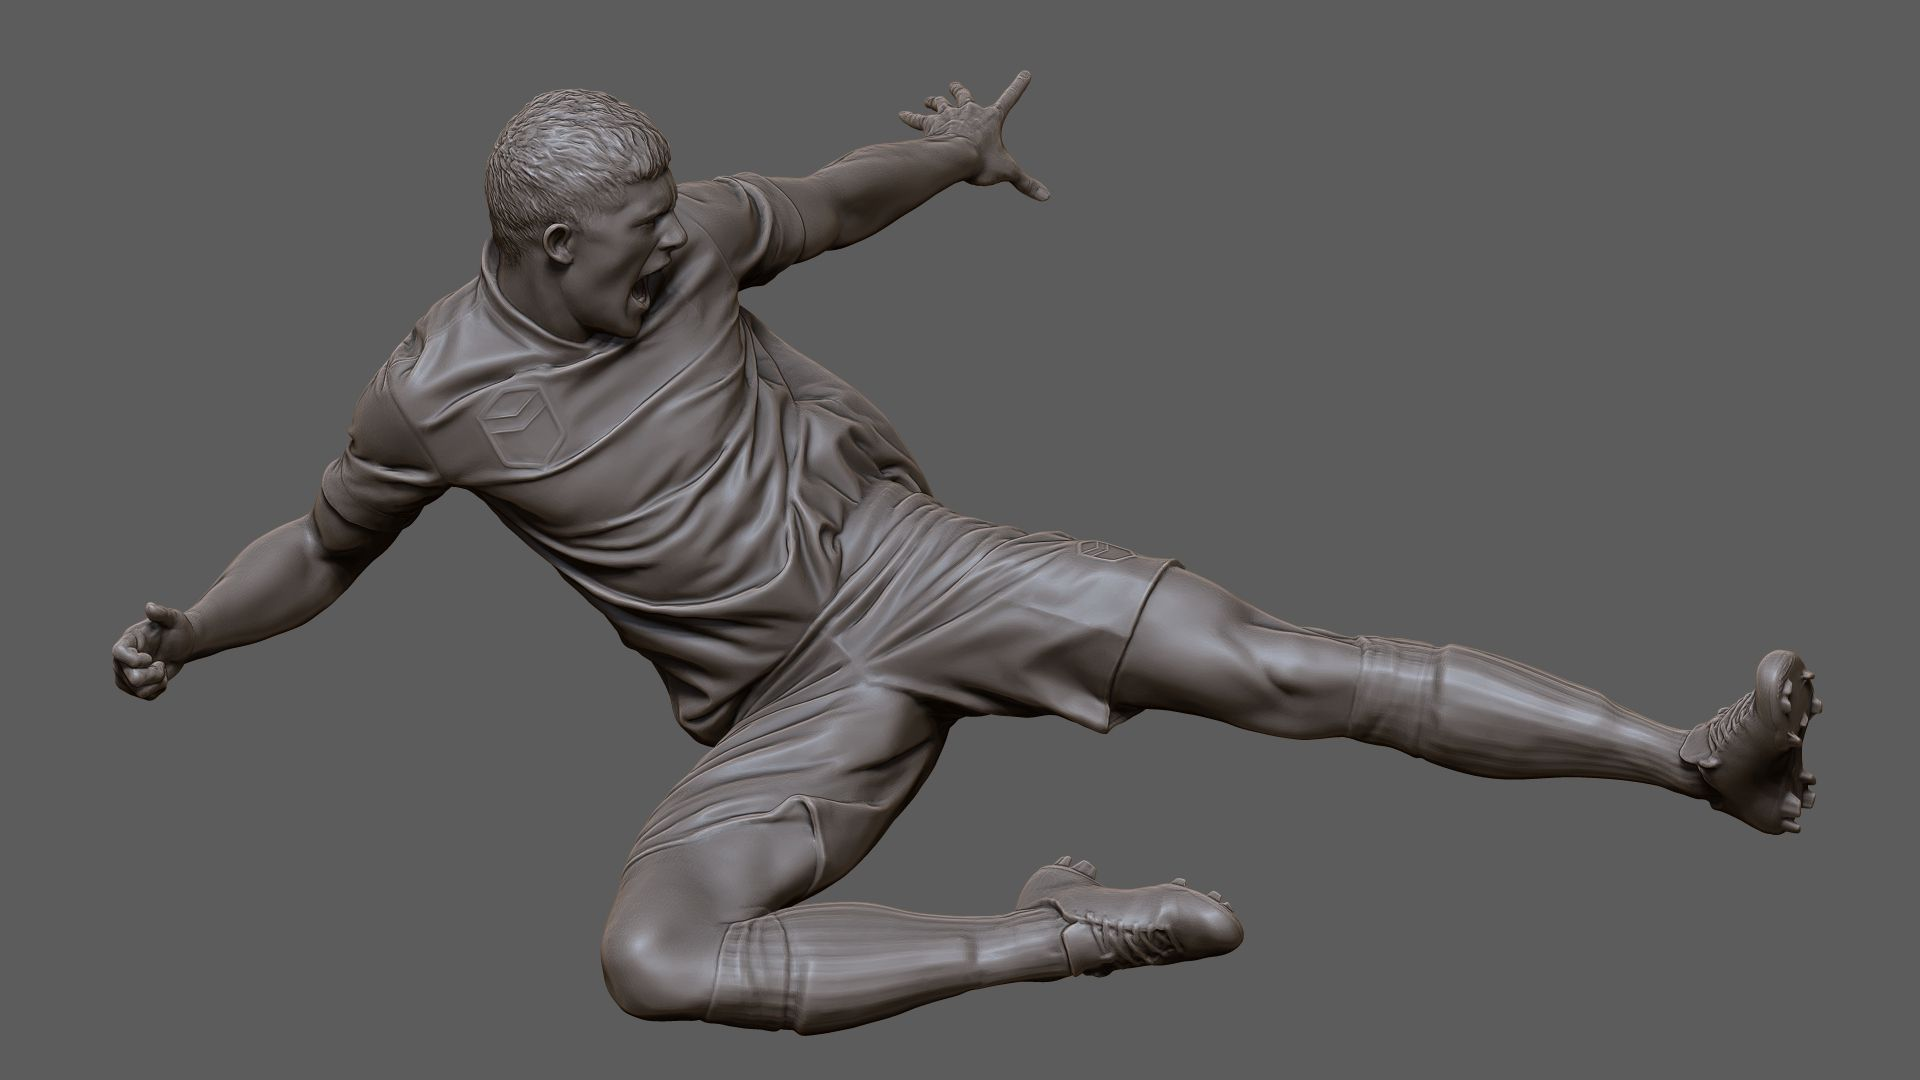 Digitally sculpted 3d model from a photogrammetry scan of an action